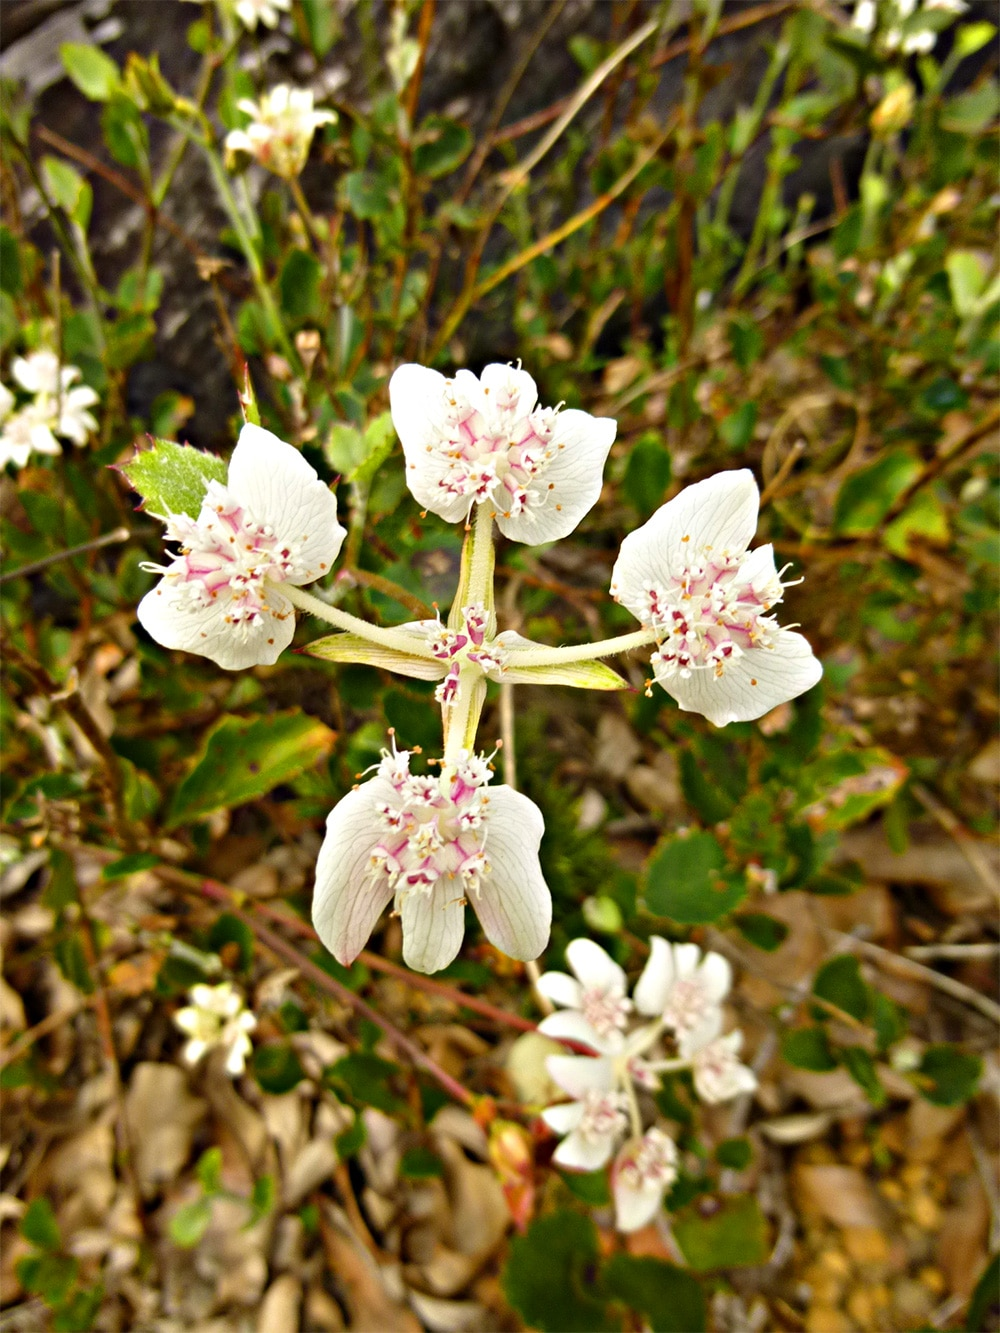 Southern Cross Wildflowers in Porongurup National Park